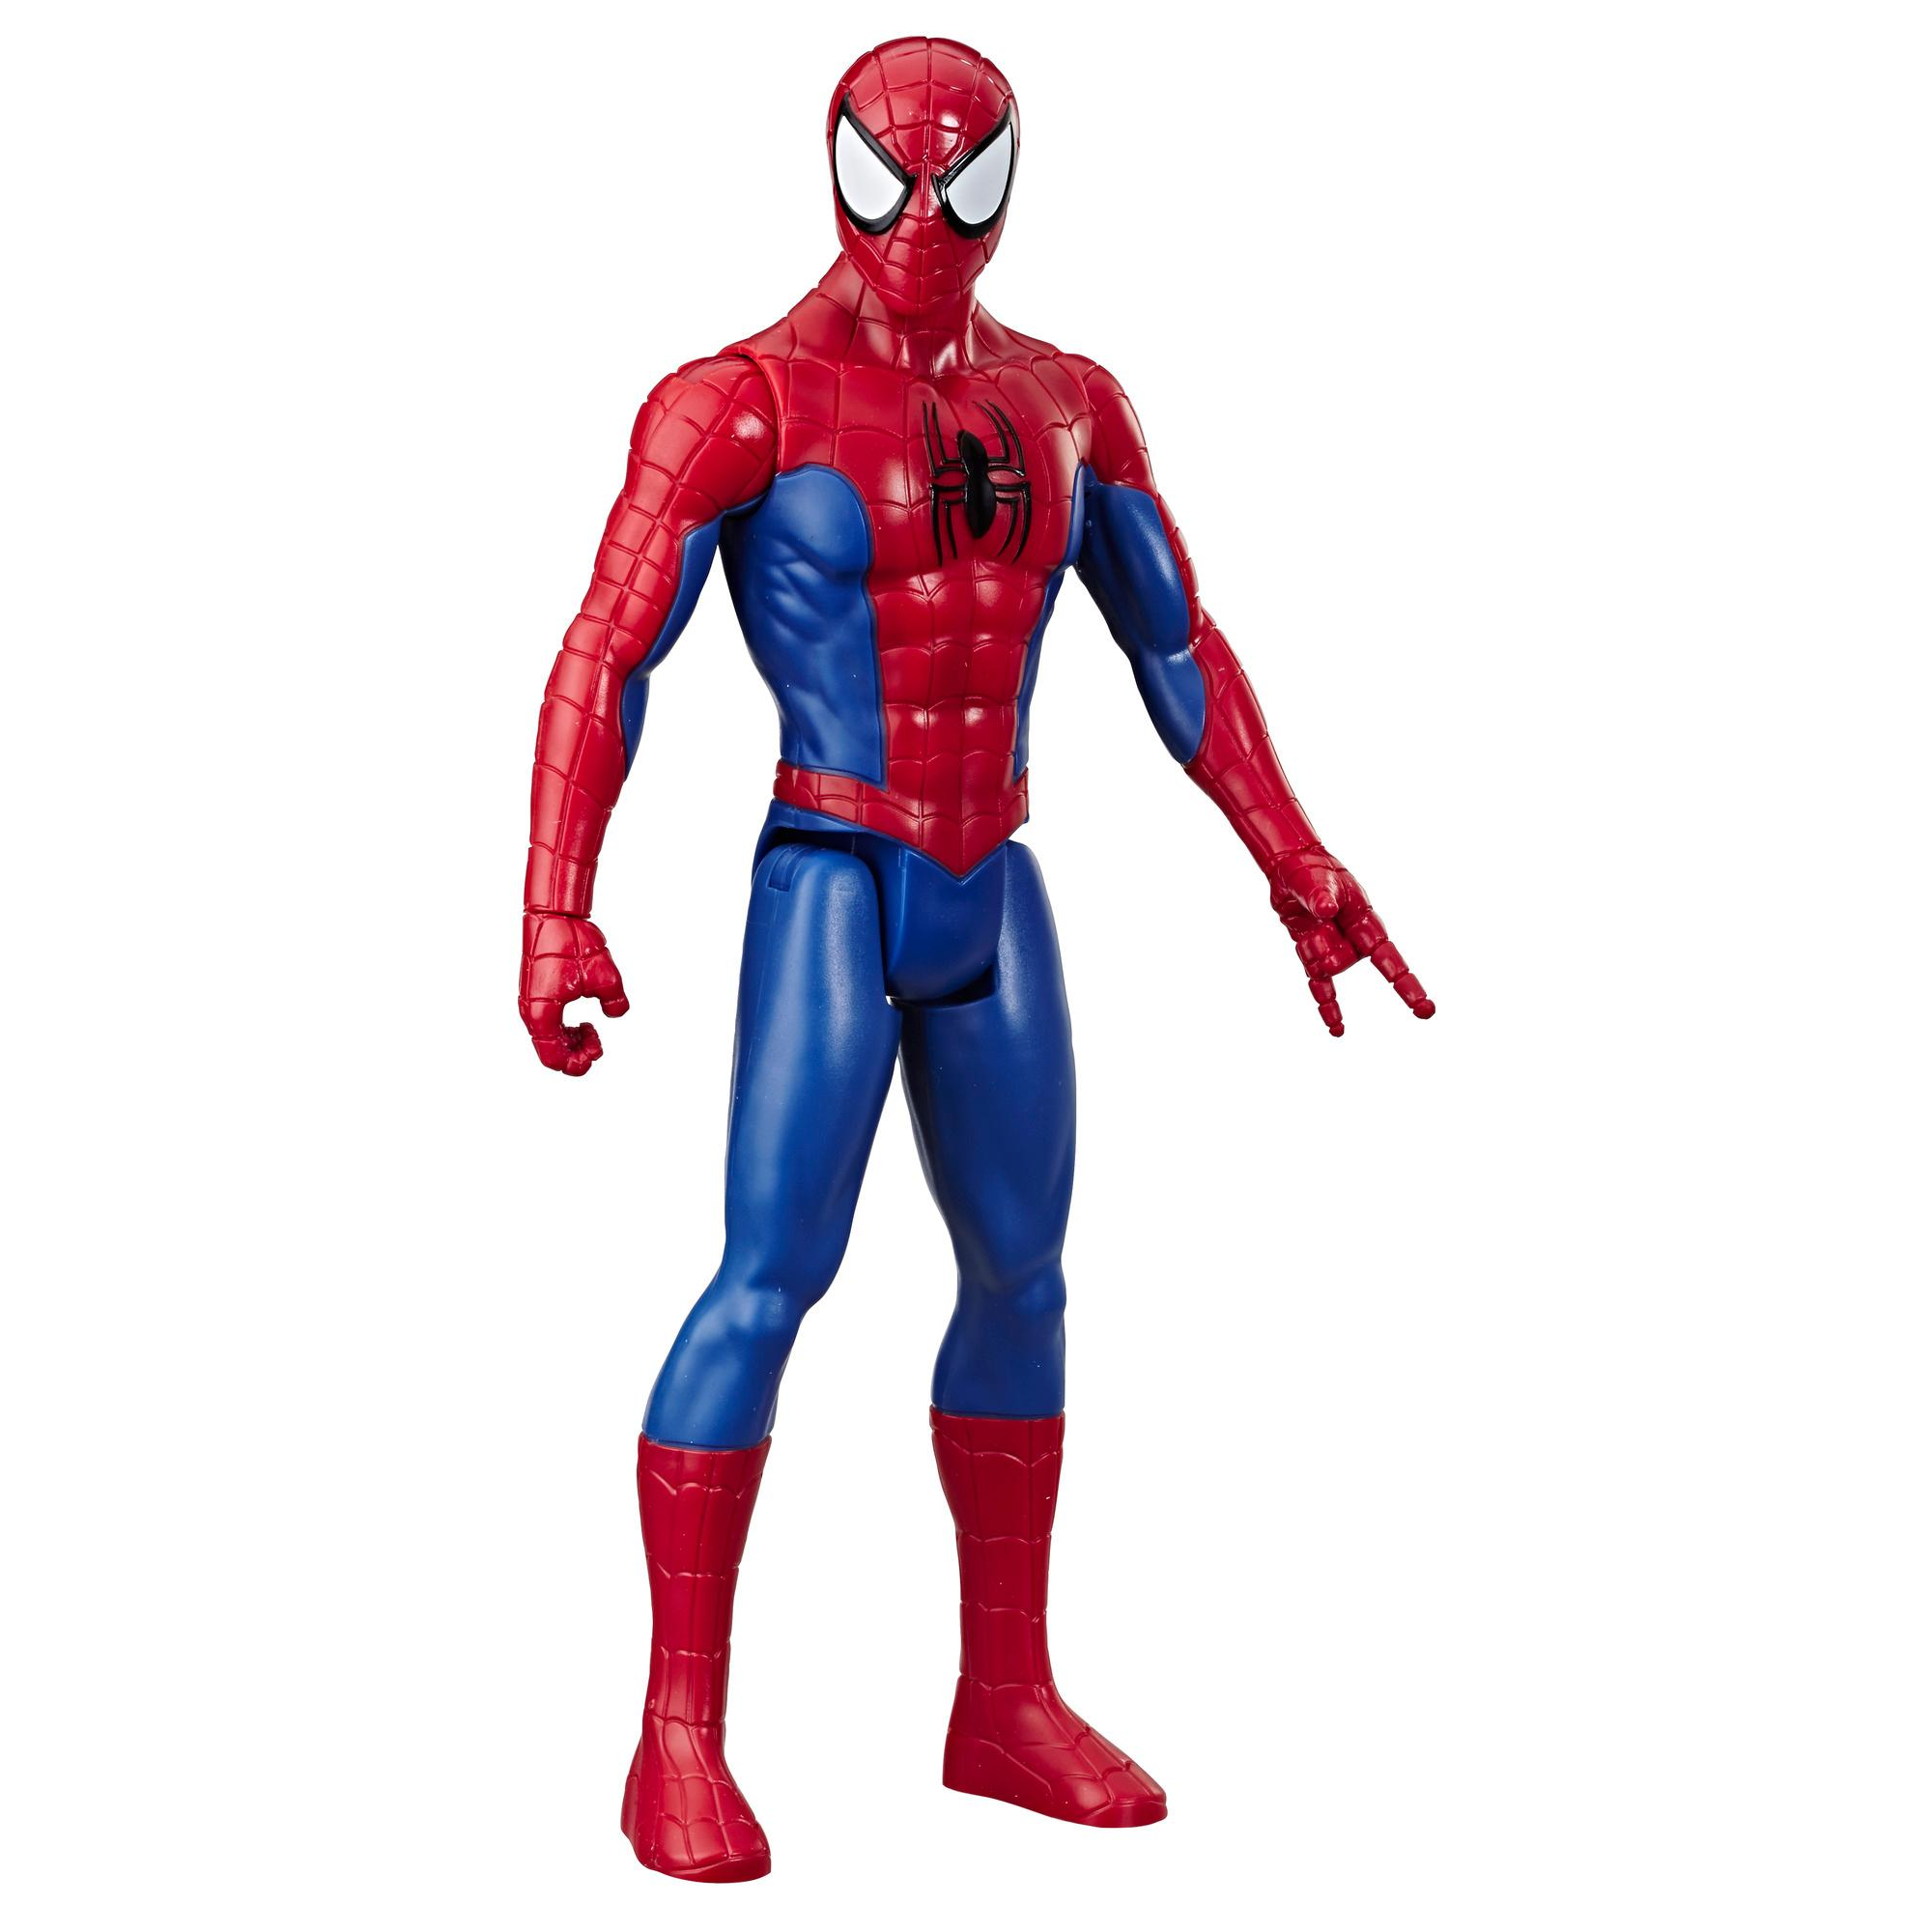 Marvel Spider-Man Titan Hero Series Spider-Man 30 cm høy actionfigur av superhelt-leke med Titan Hero FX-port